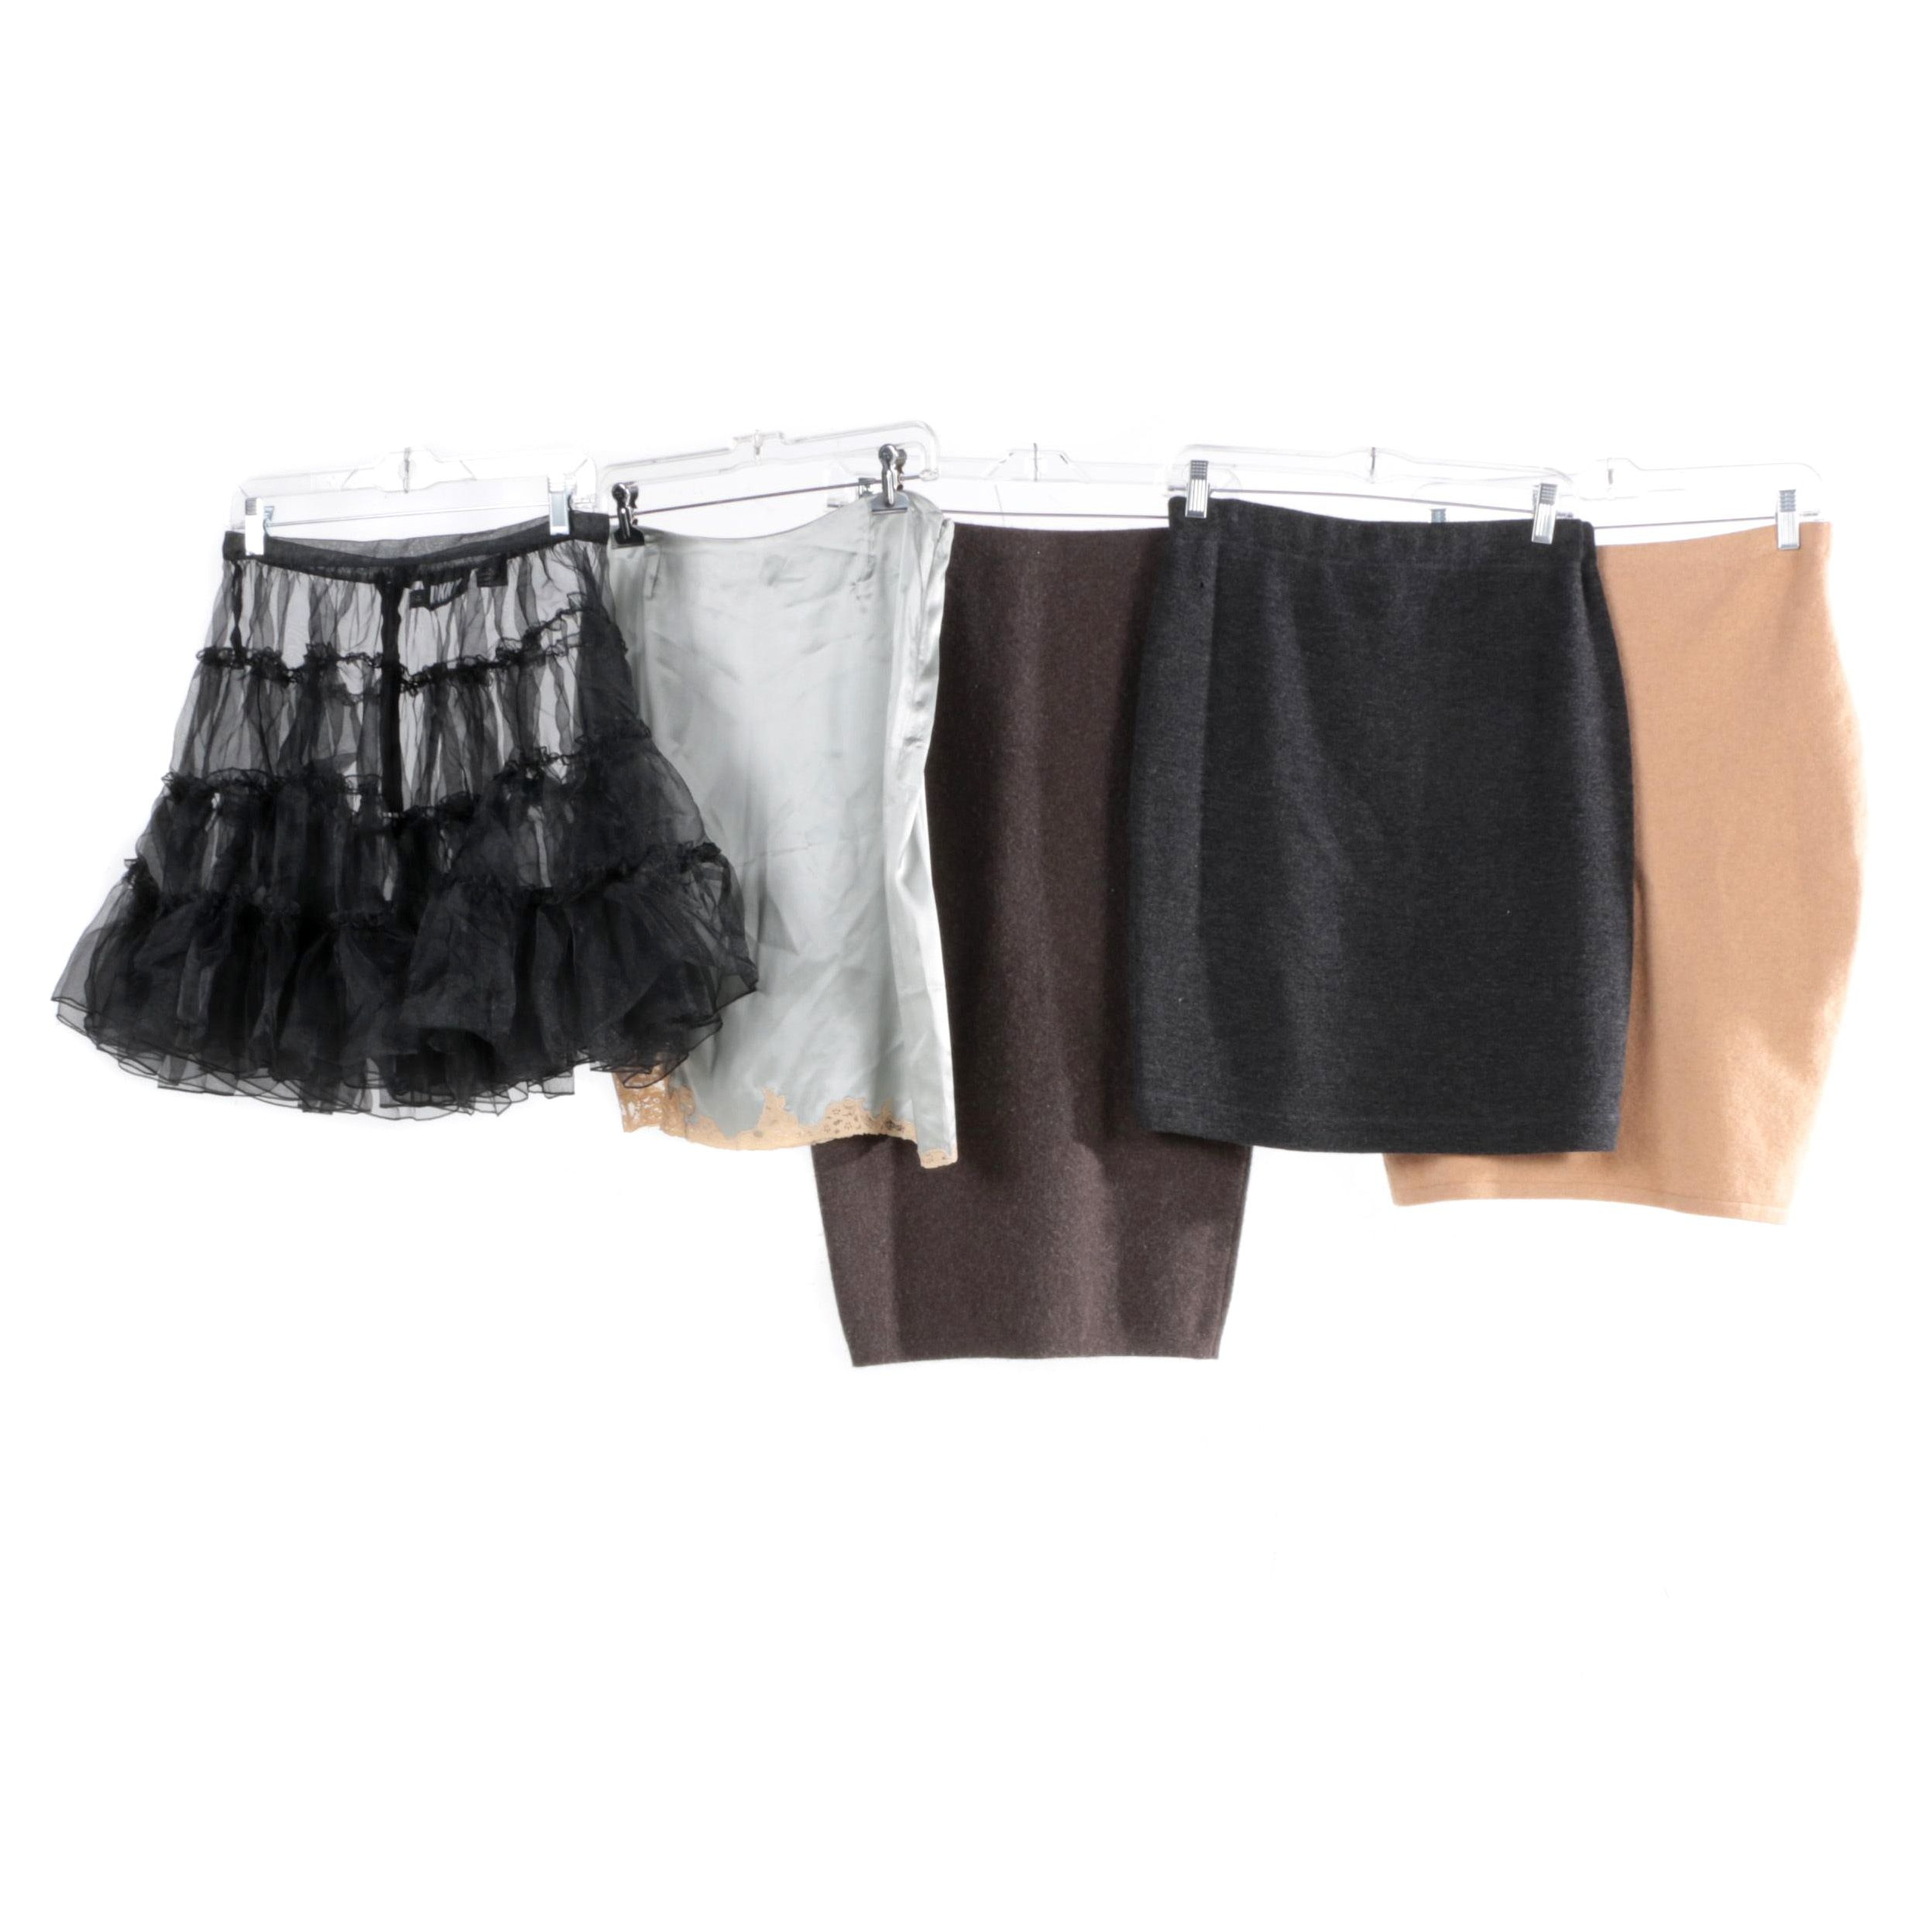 Women's Skirts Including DKNY and Donna Karan